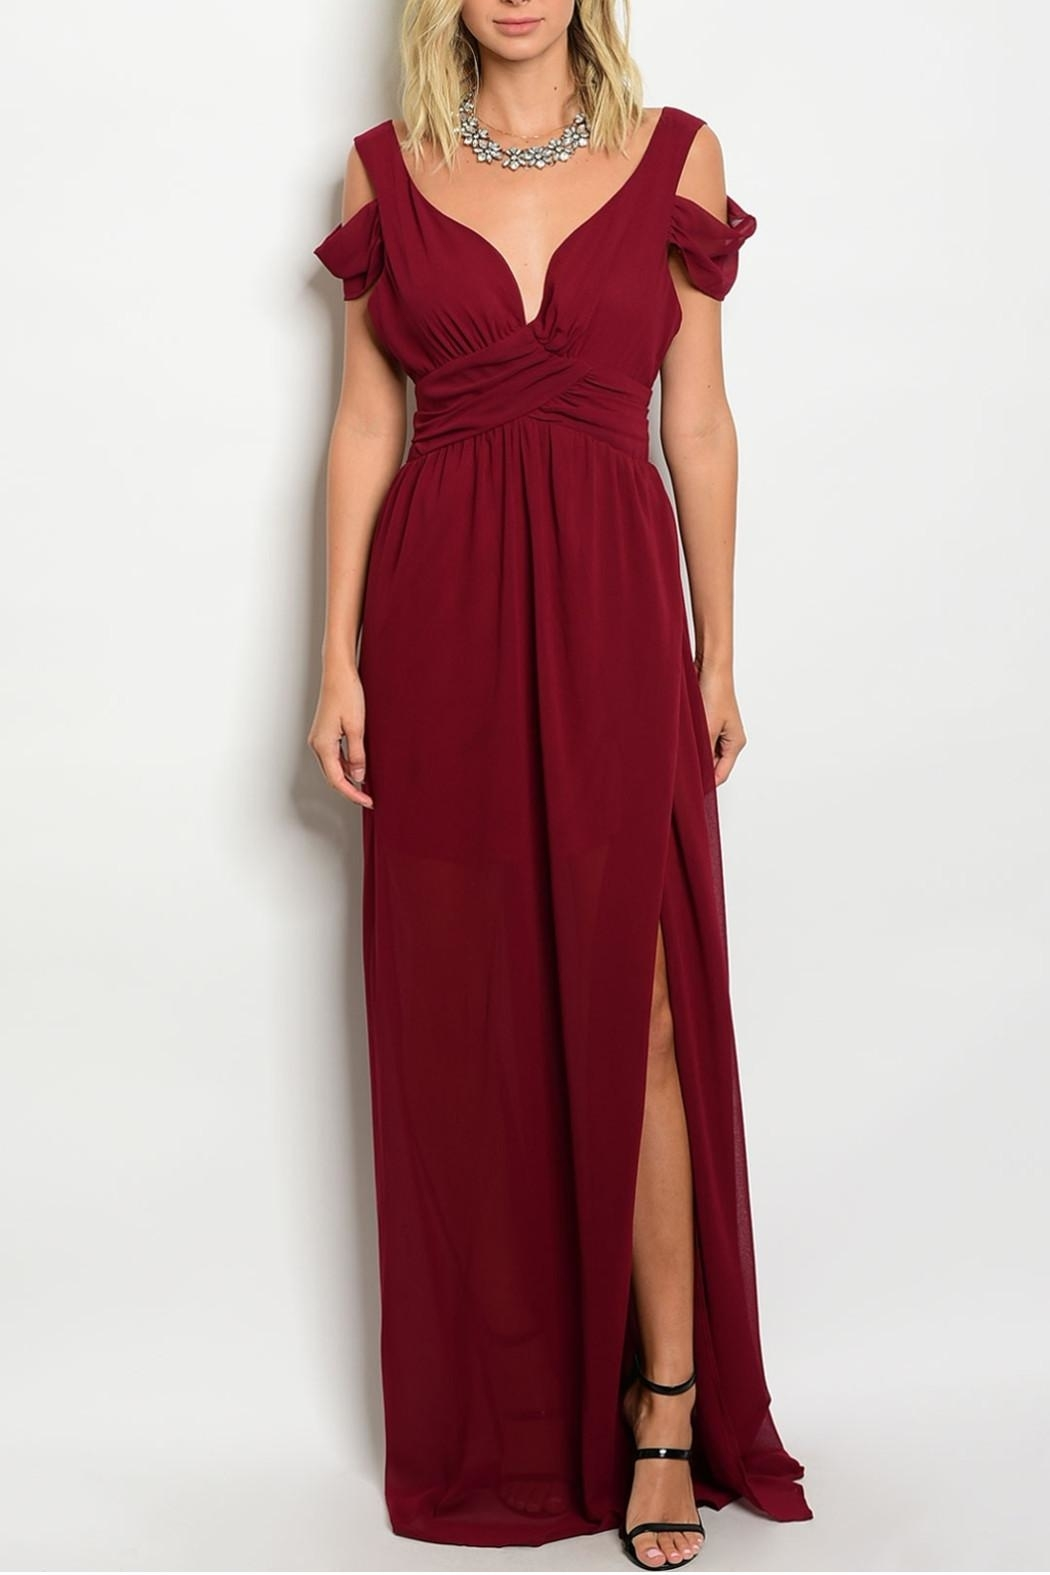 Unbranded Romantic Gown Dress - Main Image